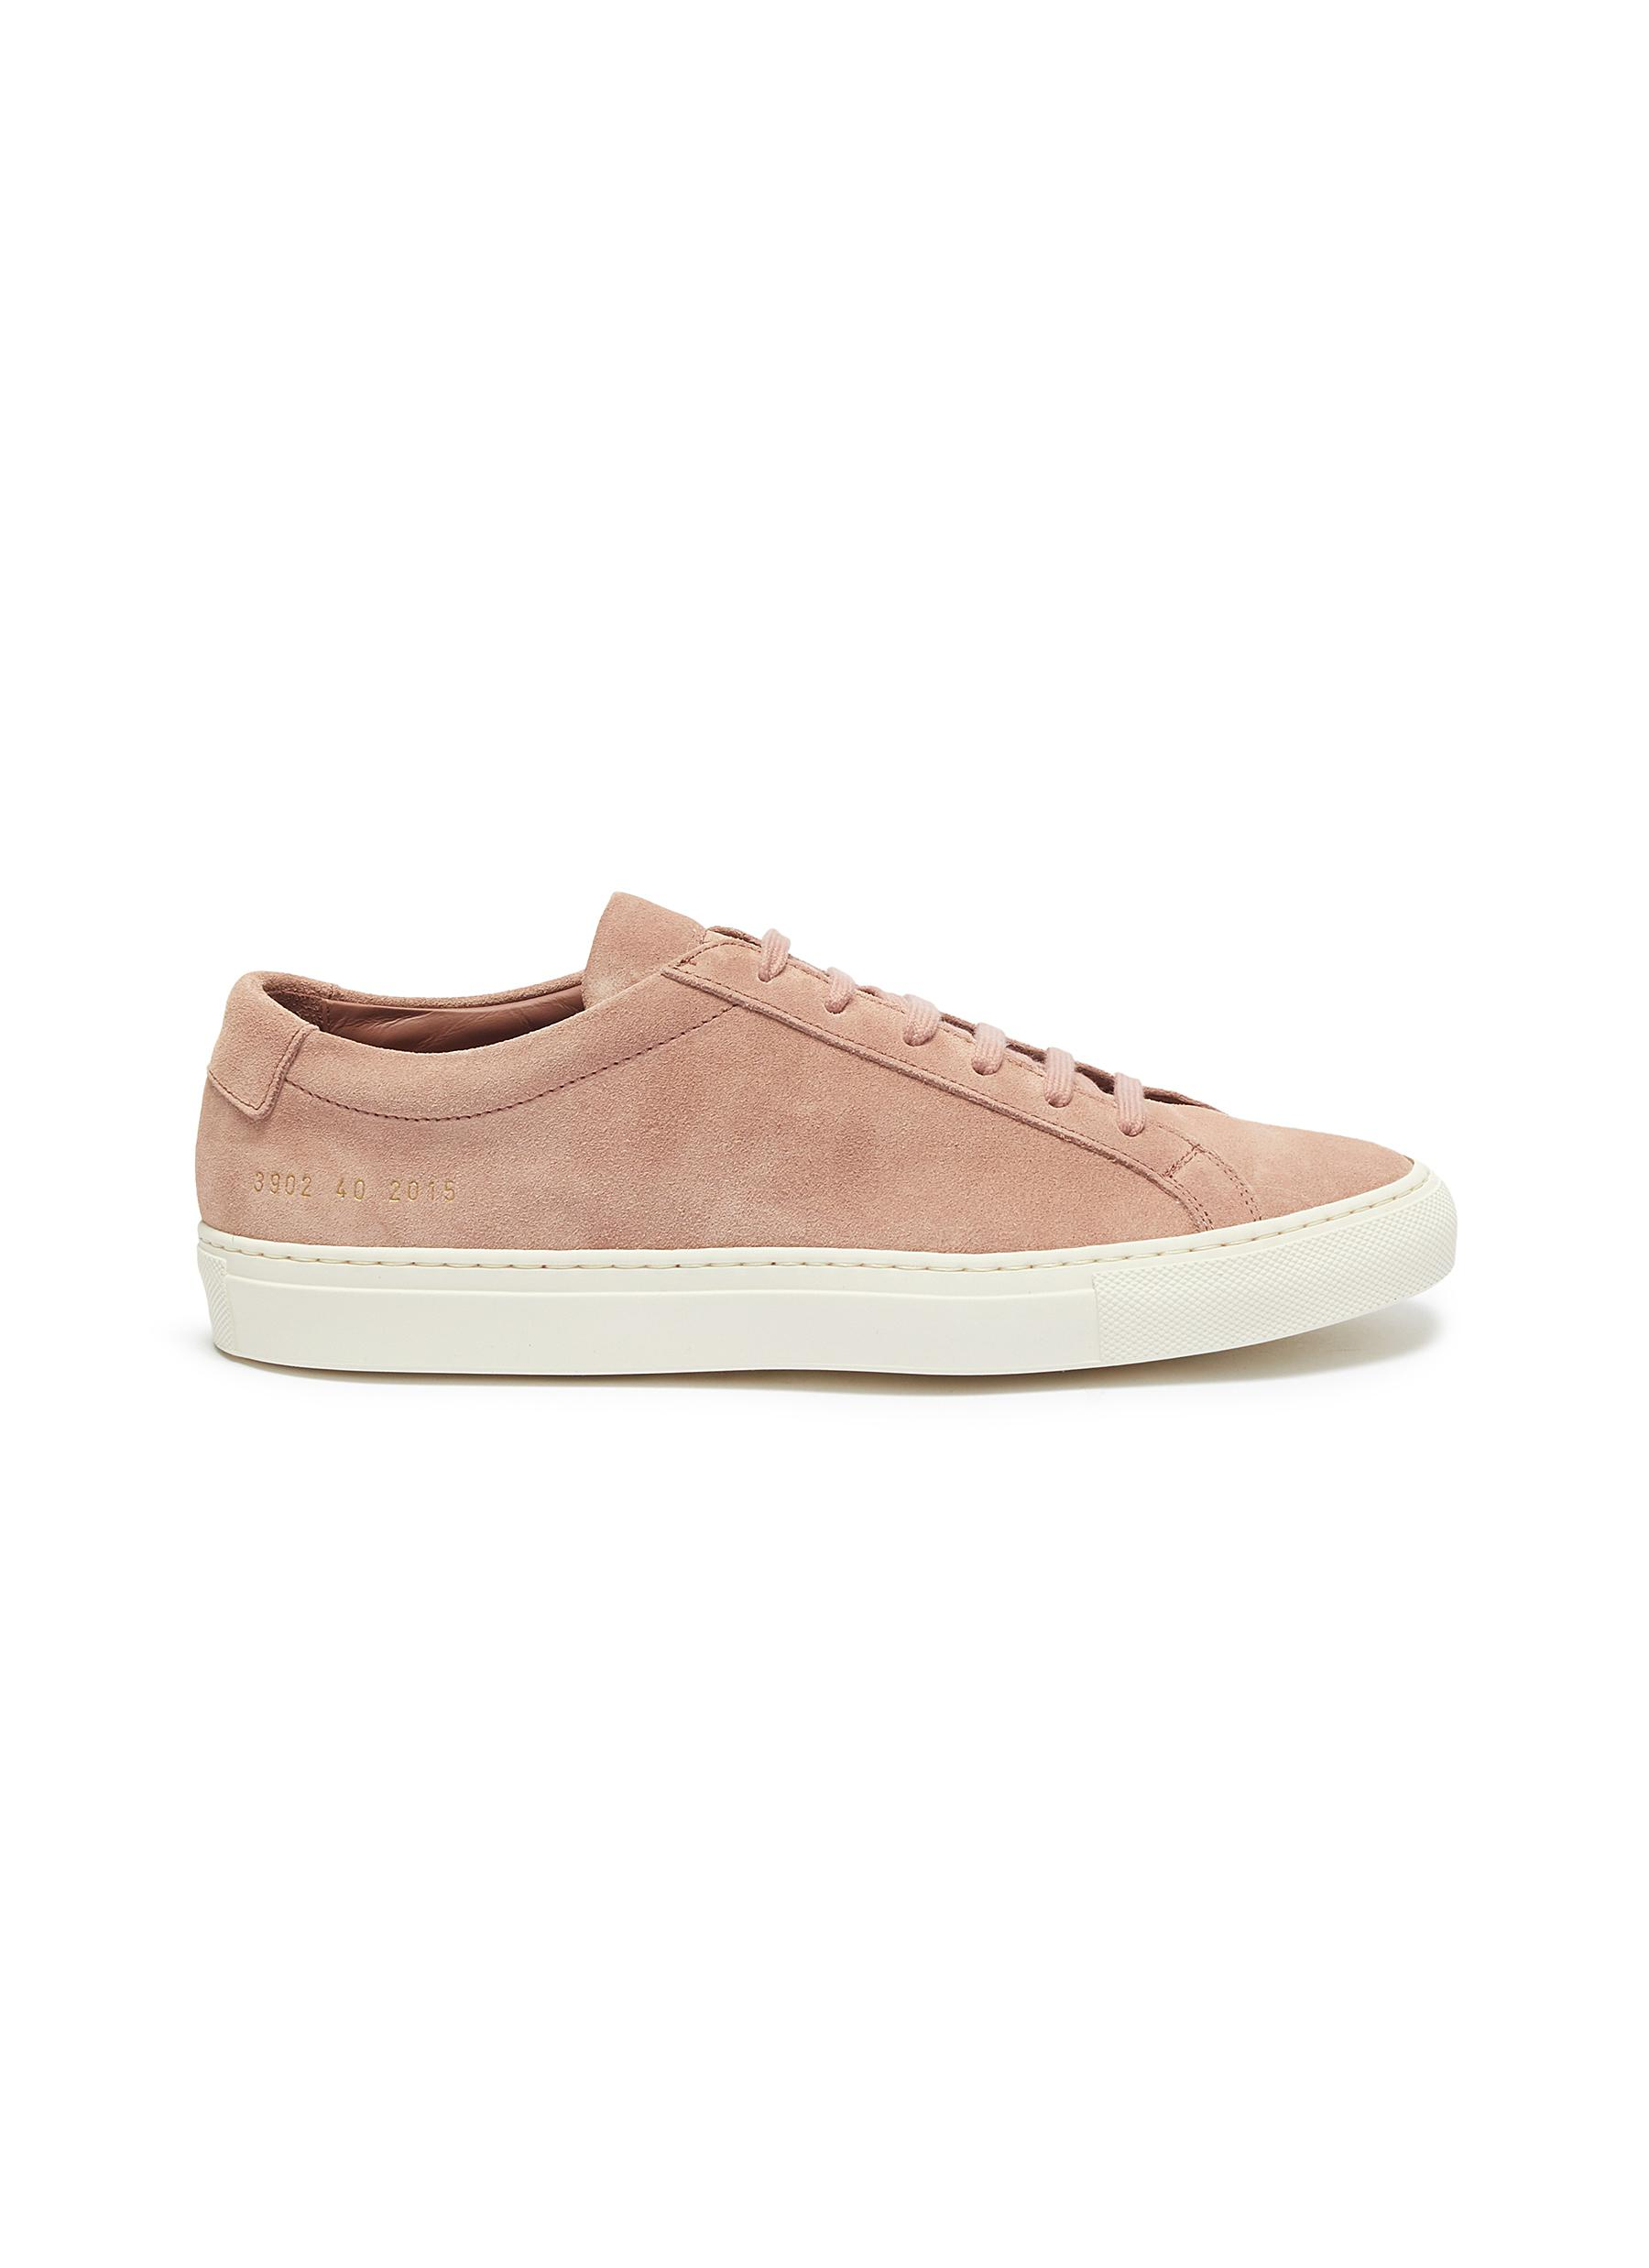 Original Achilles suede sneakers by Common Projects